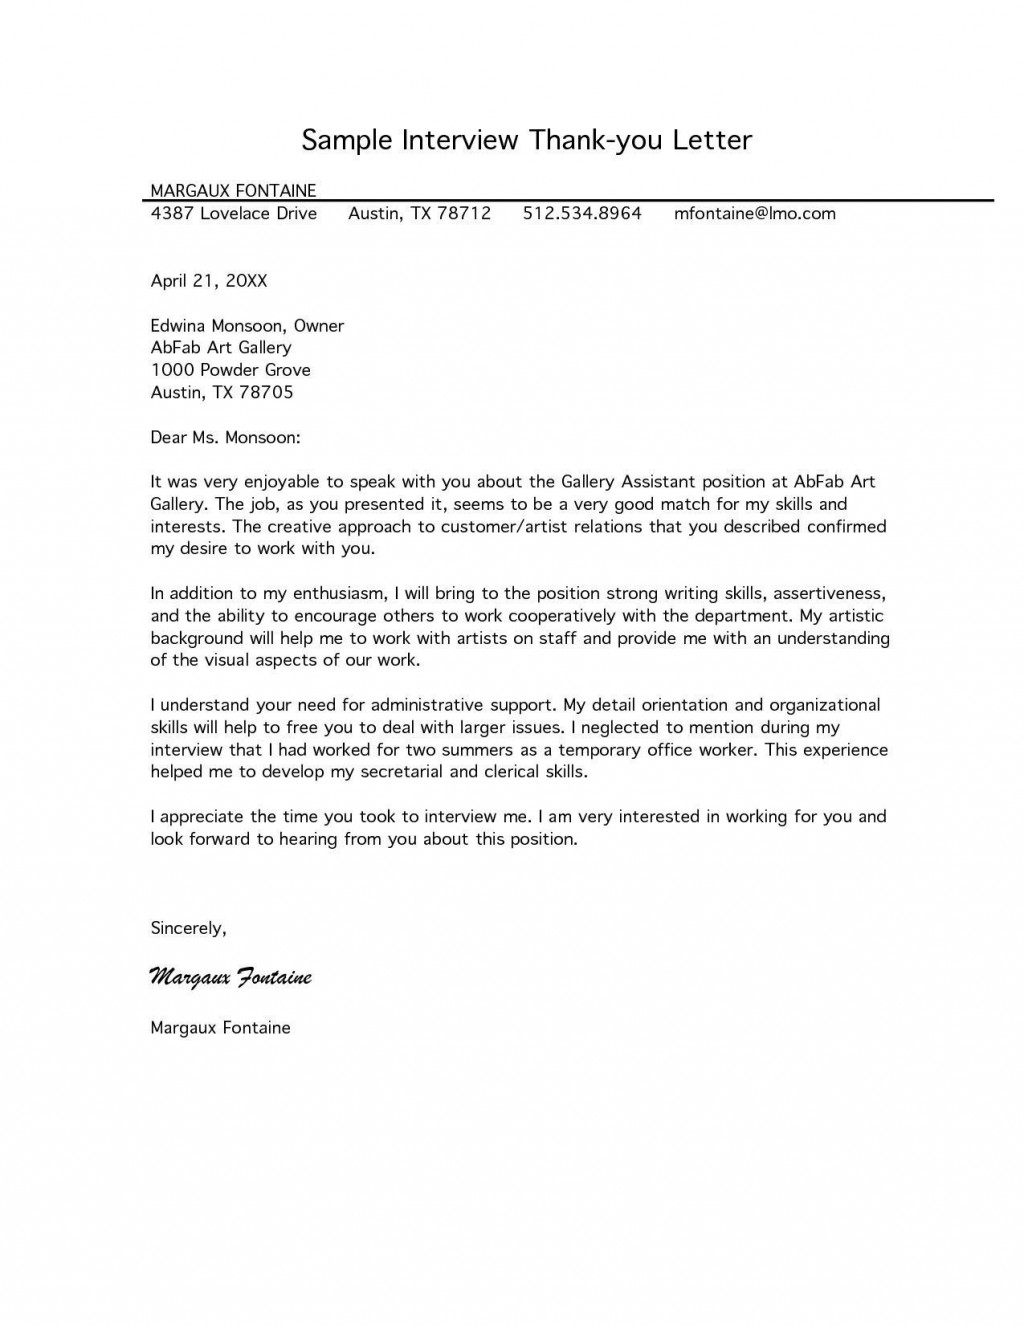 002 Beautiful Follow Up Letter After Interview Sample  Handwritten Note Email For Job TemplateLarge